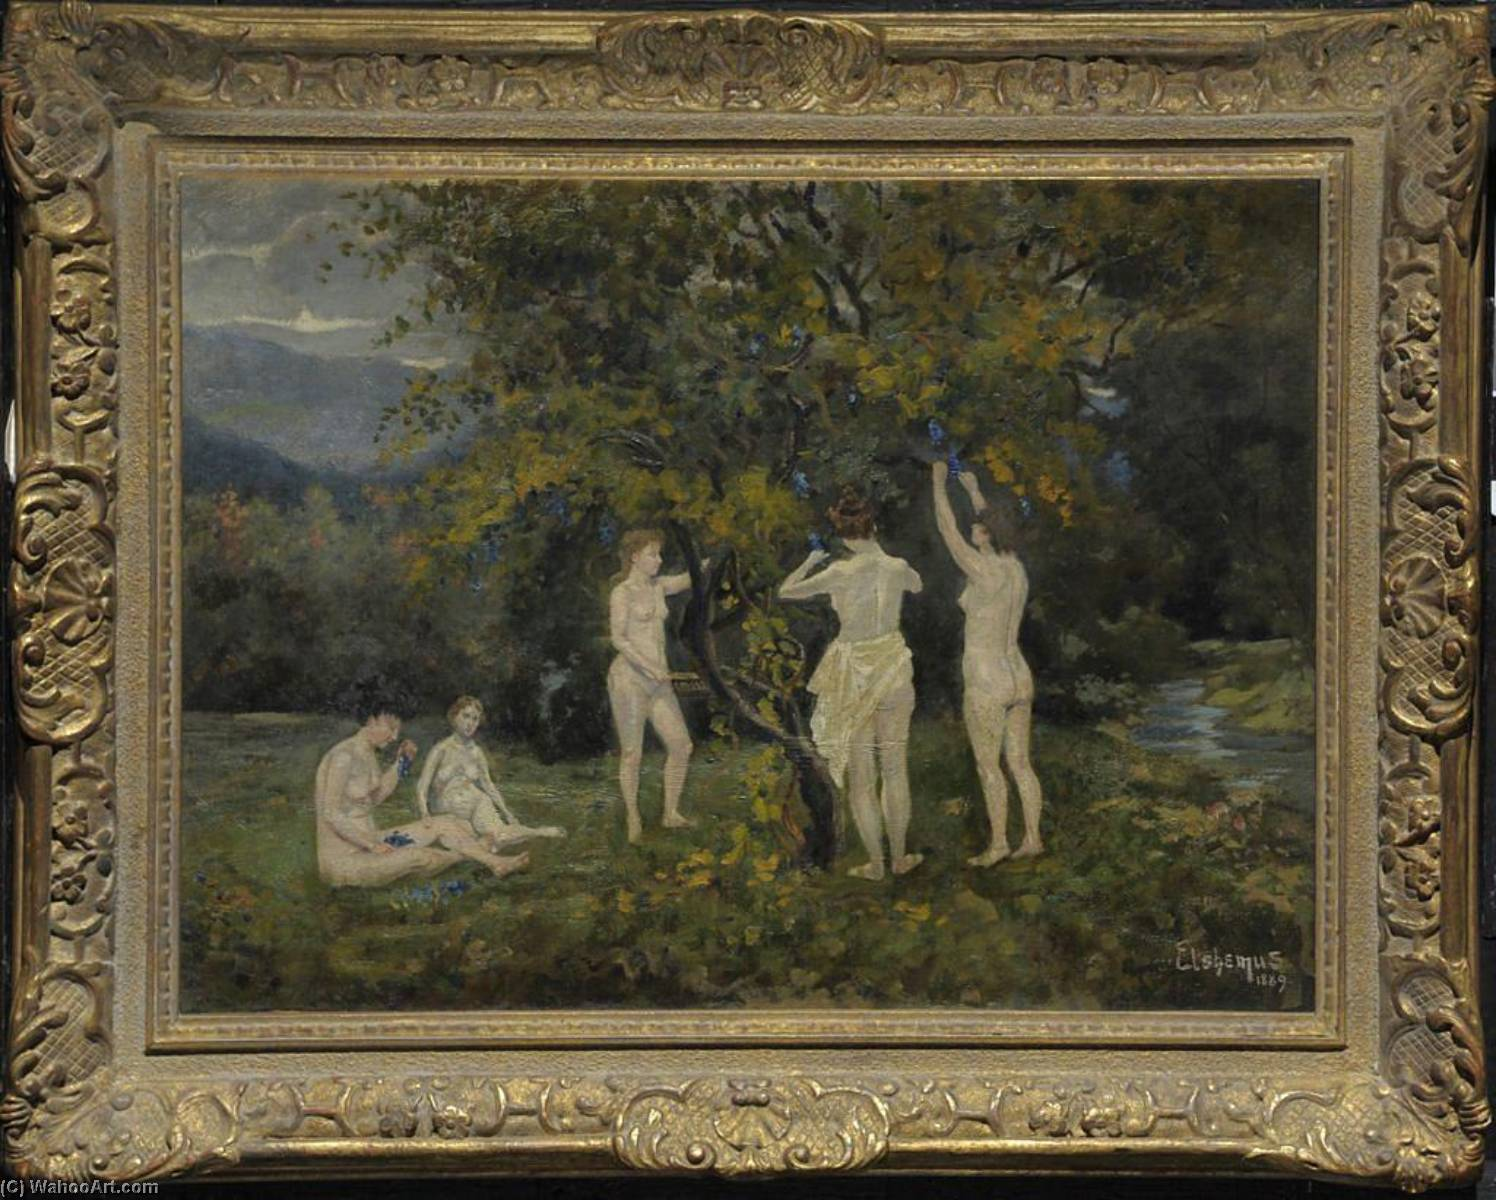 Five Nudes in a Grape Arbor, Oil On Canvas by Louis Michel Eilshemius (1864-1941, United States)